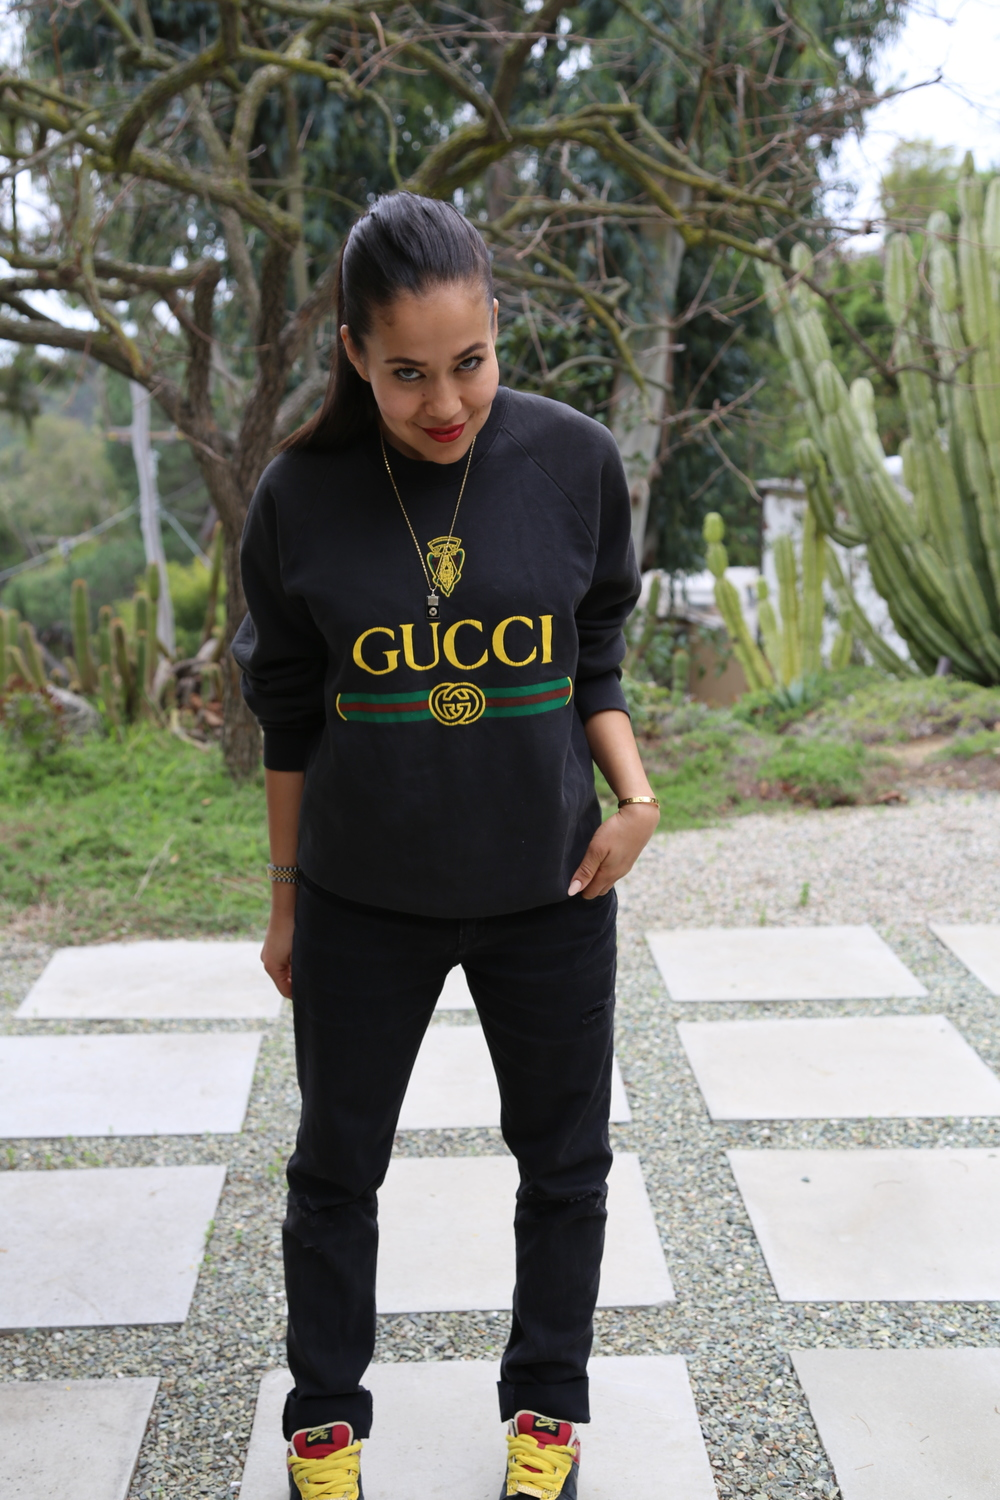 VANESSA-BELETIC-VINTAGE-GUCCI-SWEATSHIRT-NIKE-DUNKS-LOS-ANGELES.JPG